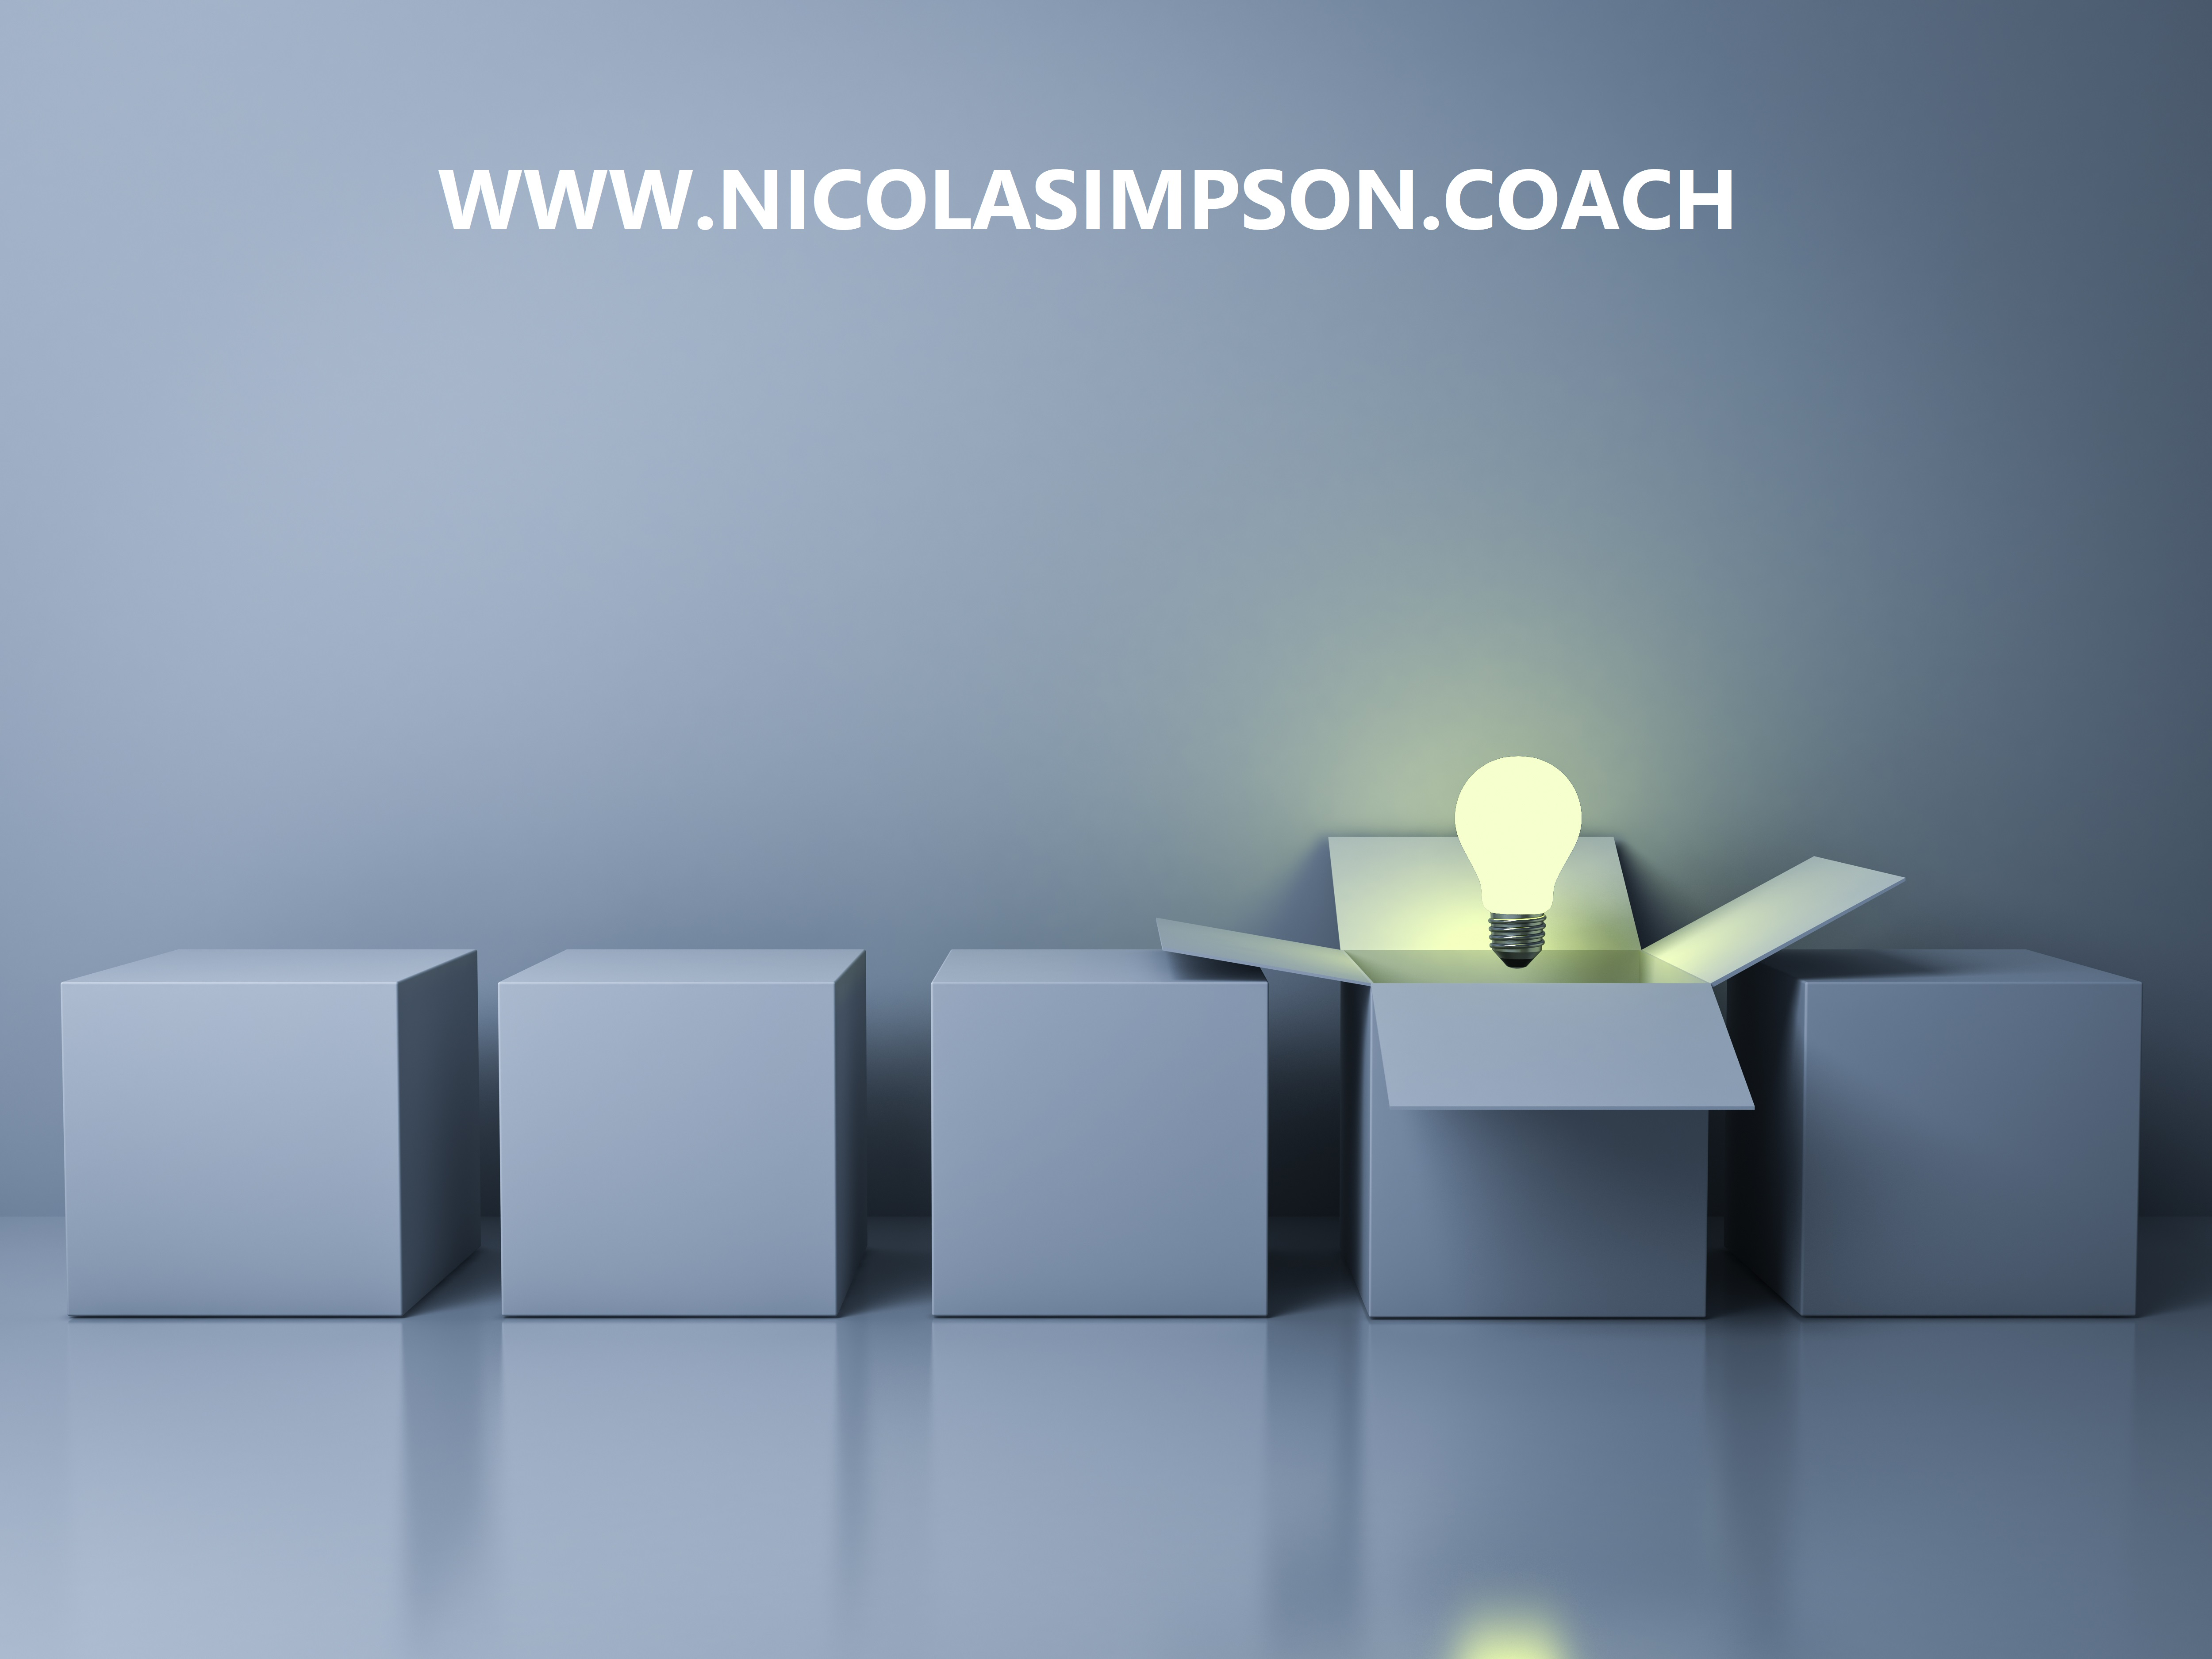 Nicola Simpson Executive Coaching